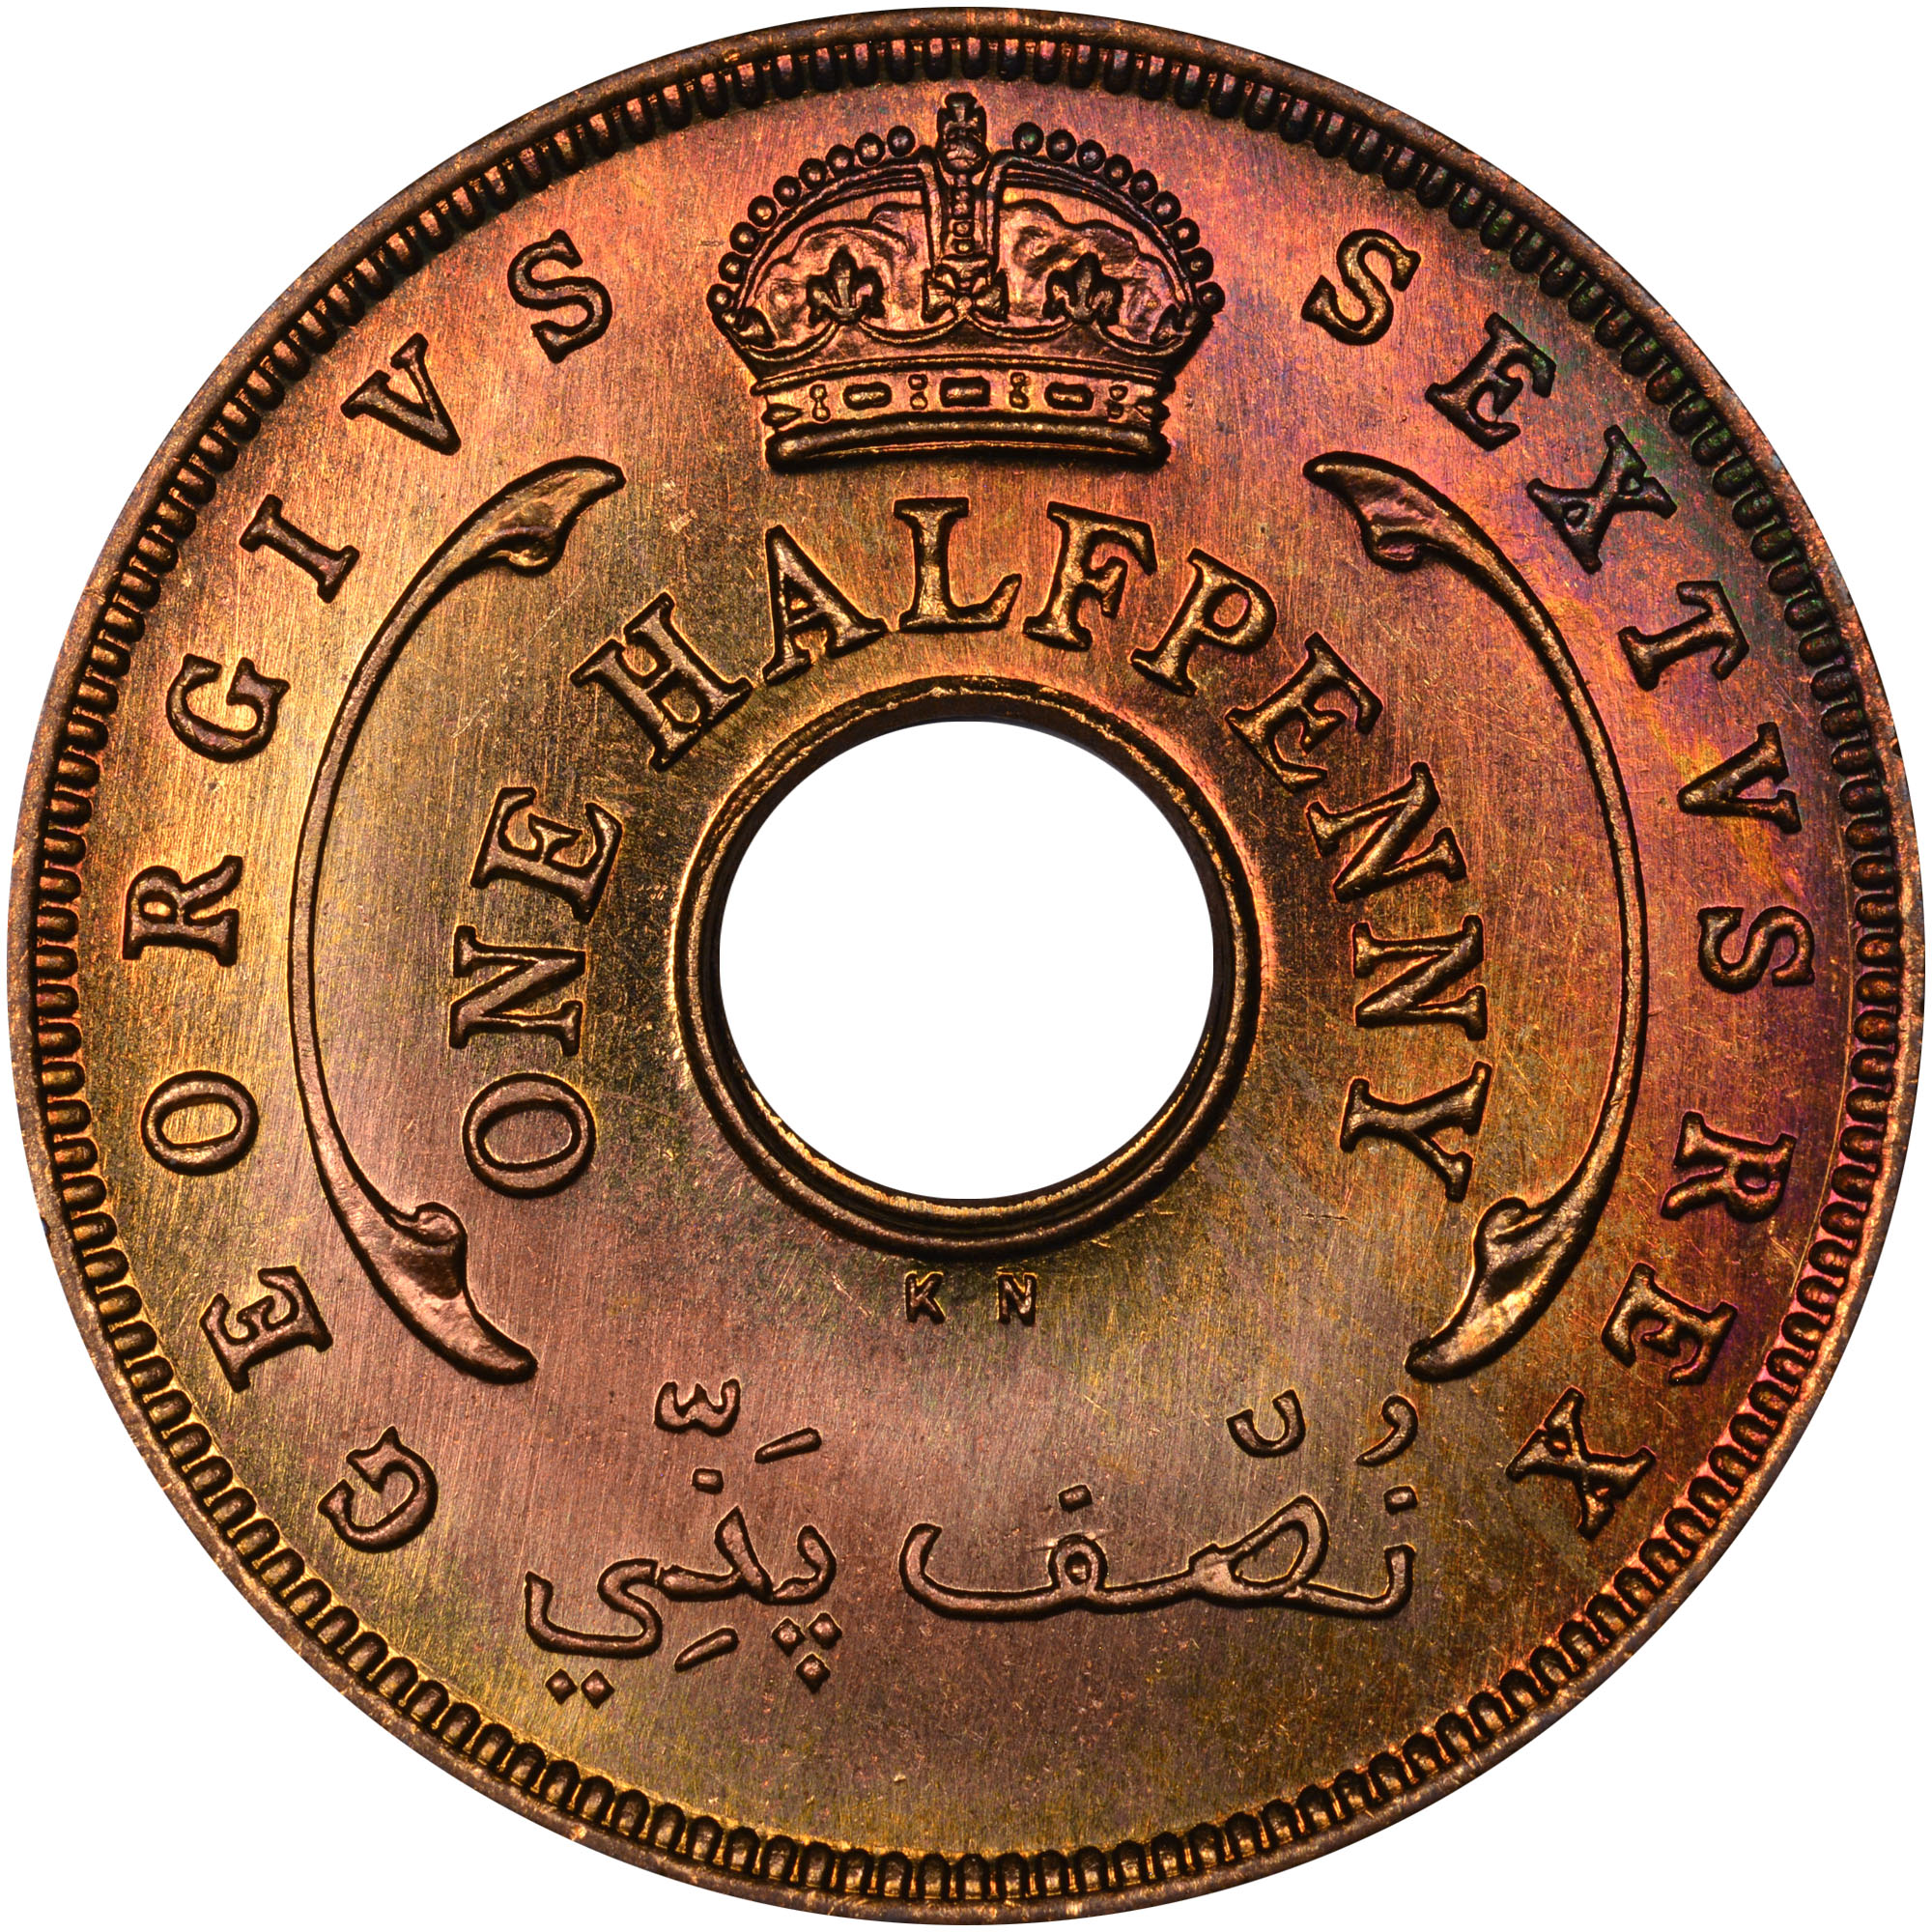 1952 British West Africa 1/2 Penny obverse